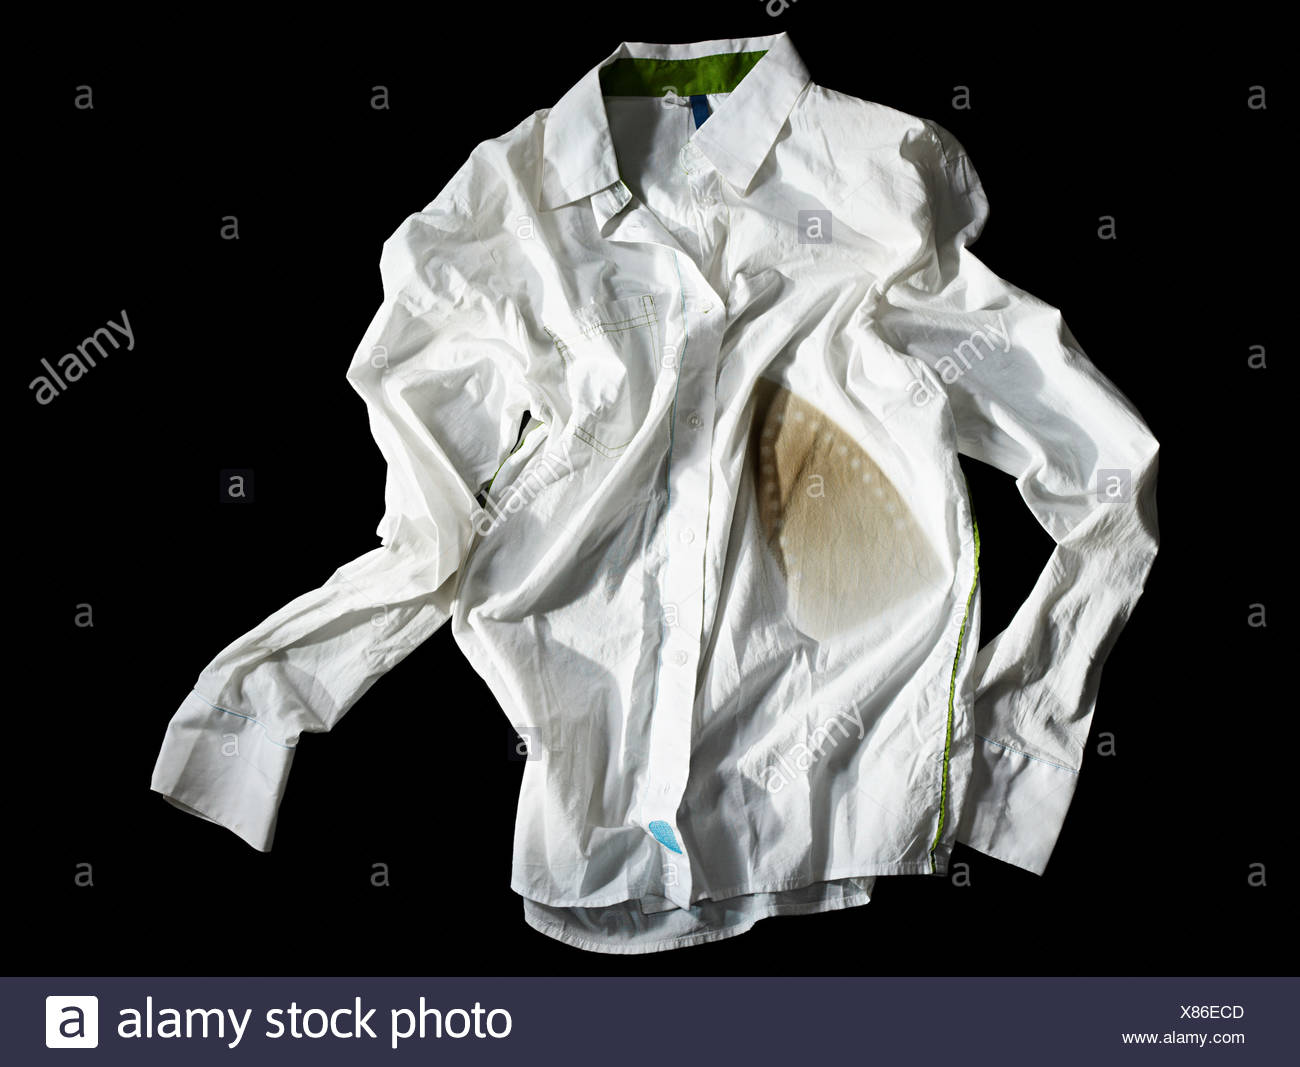 A crumpled burned white shirt - Stock Image